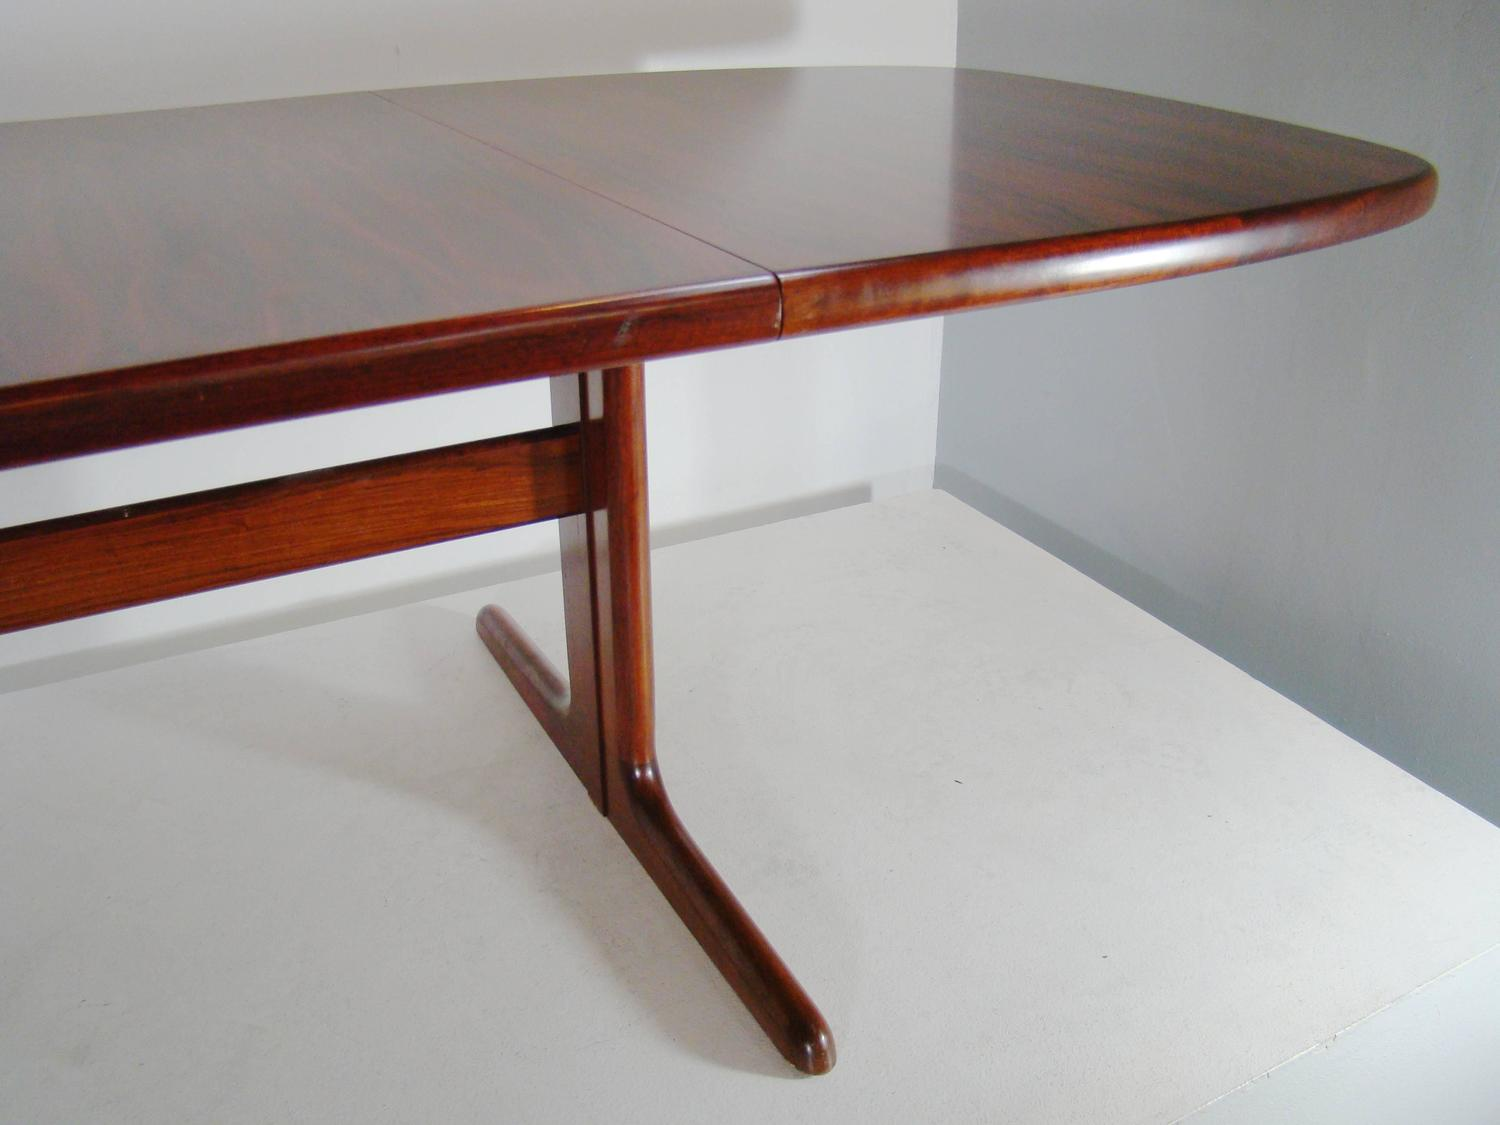 skovby rosewood dining chairs world market table by denmark at 1stdibs